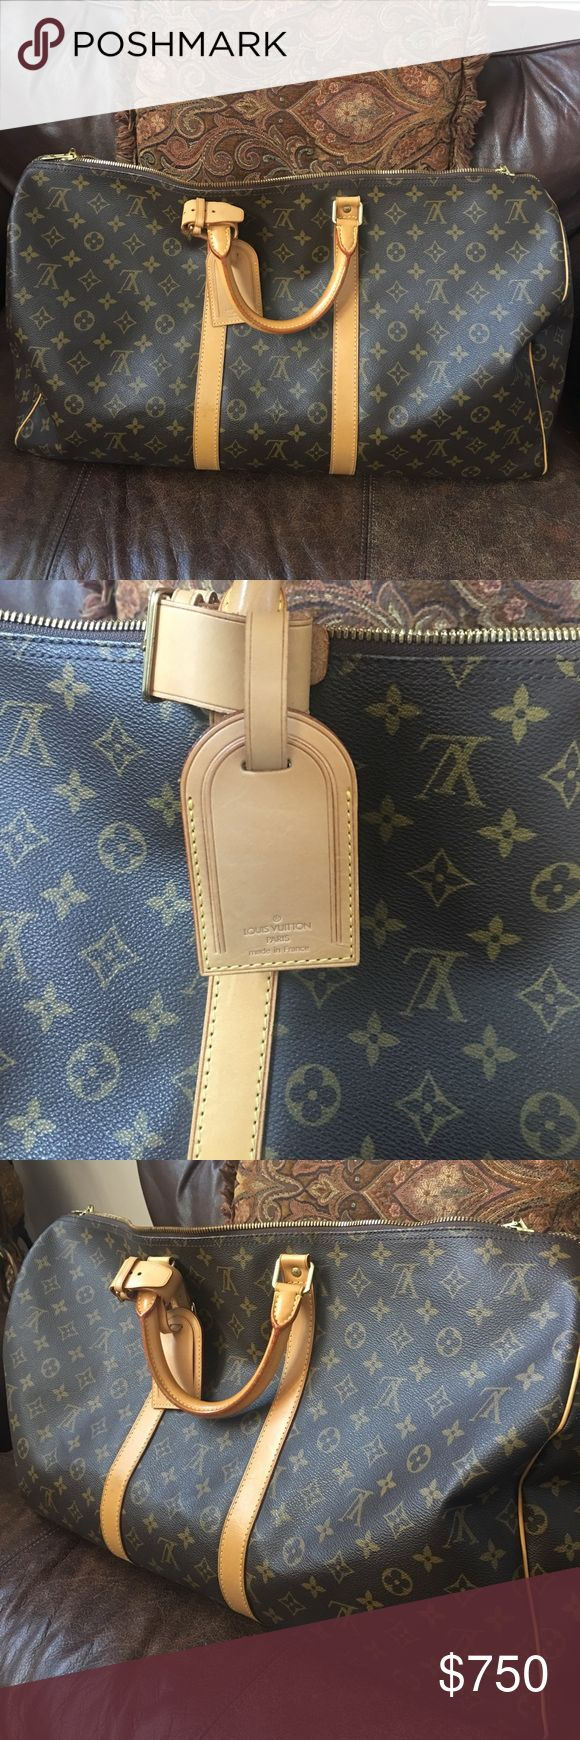 Louis Vuitton keepall 55 Authentic Louis Vuitton 55 keepall. Still in good condition, no rips or tears. Just normal use. Louis Vuitton Bags